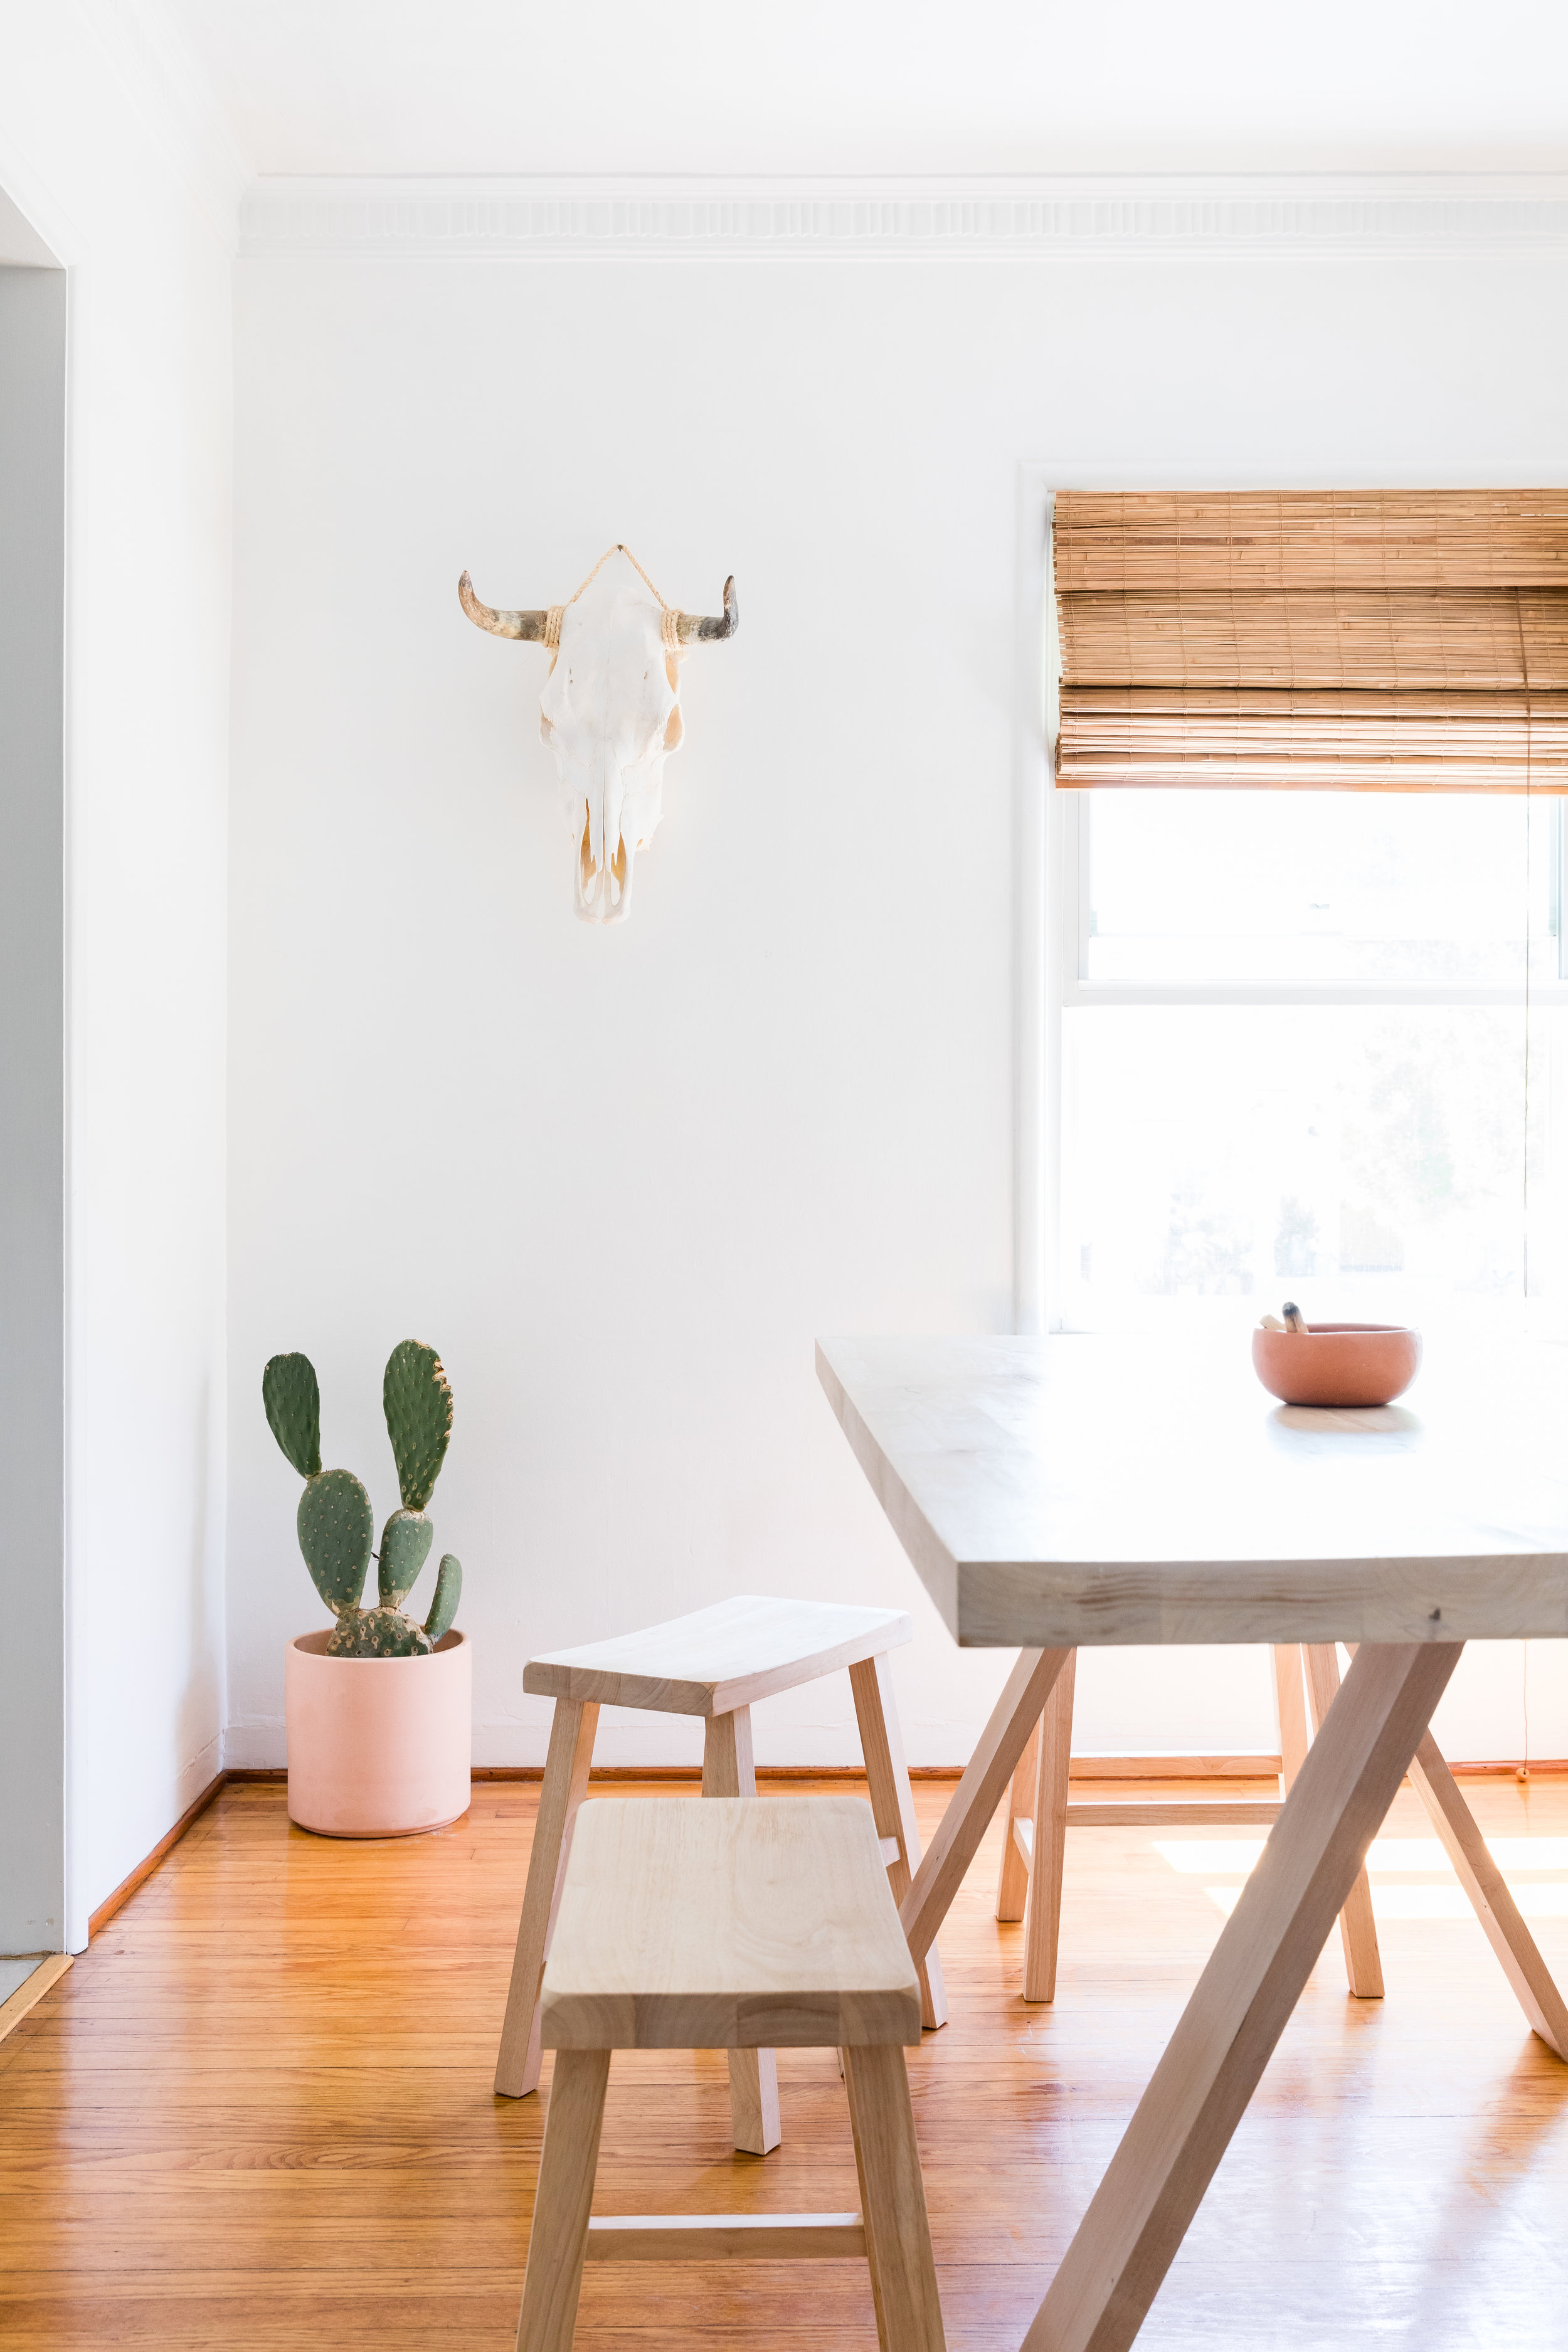 Venice Beach minimalist Airbnb with Bison skull and horns on wall, potted cactus, and Scandinavian kitchen table and benches.